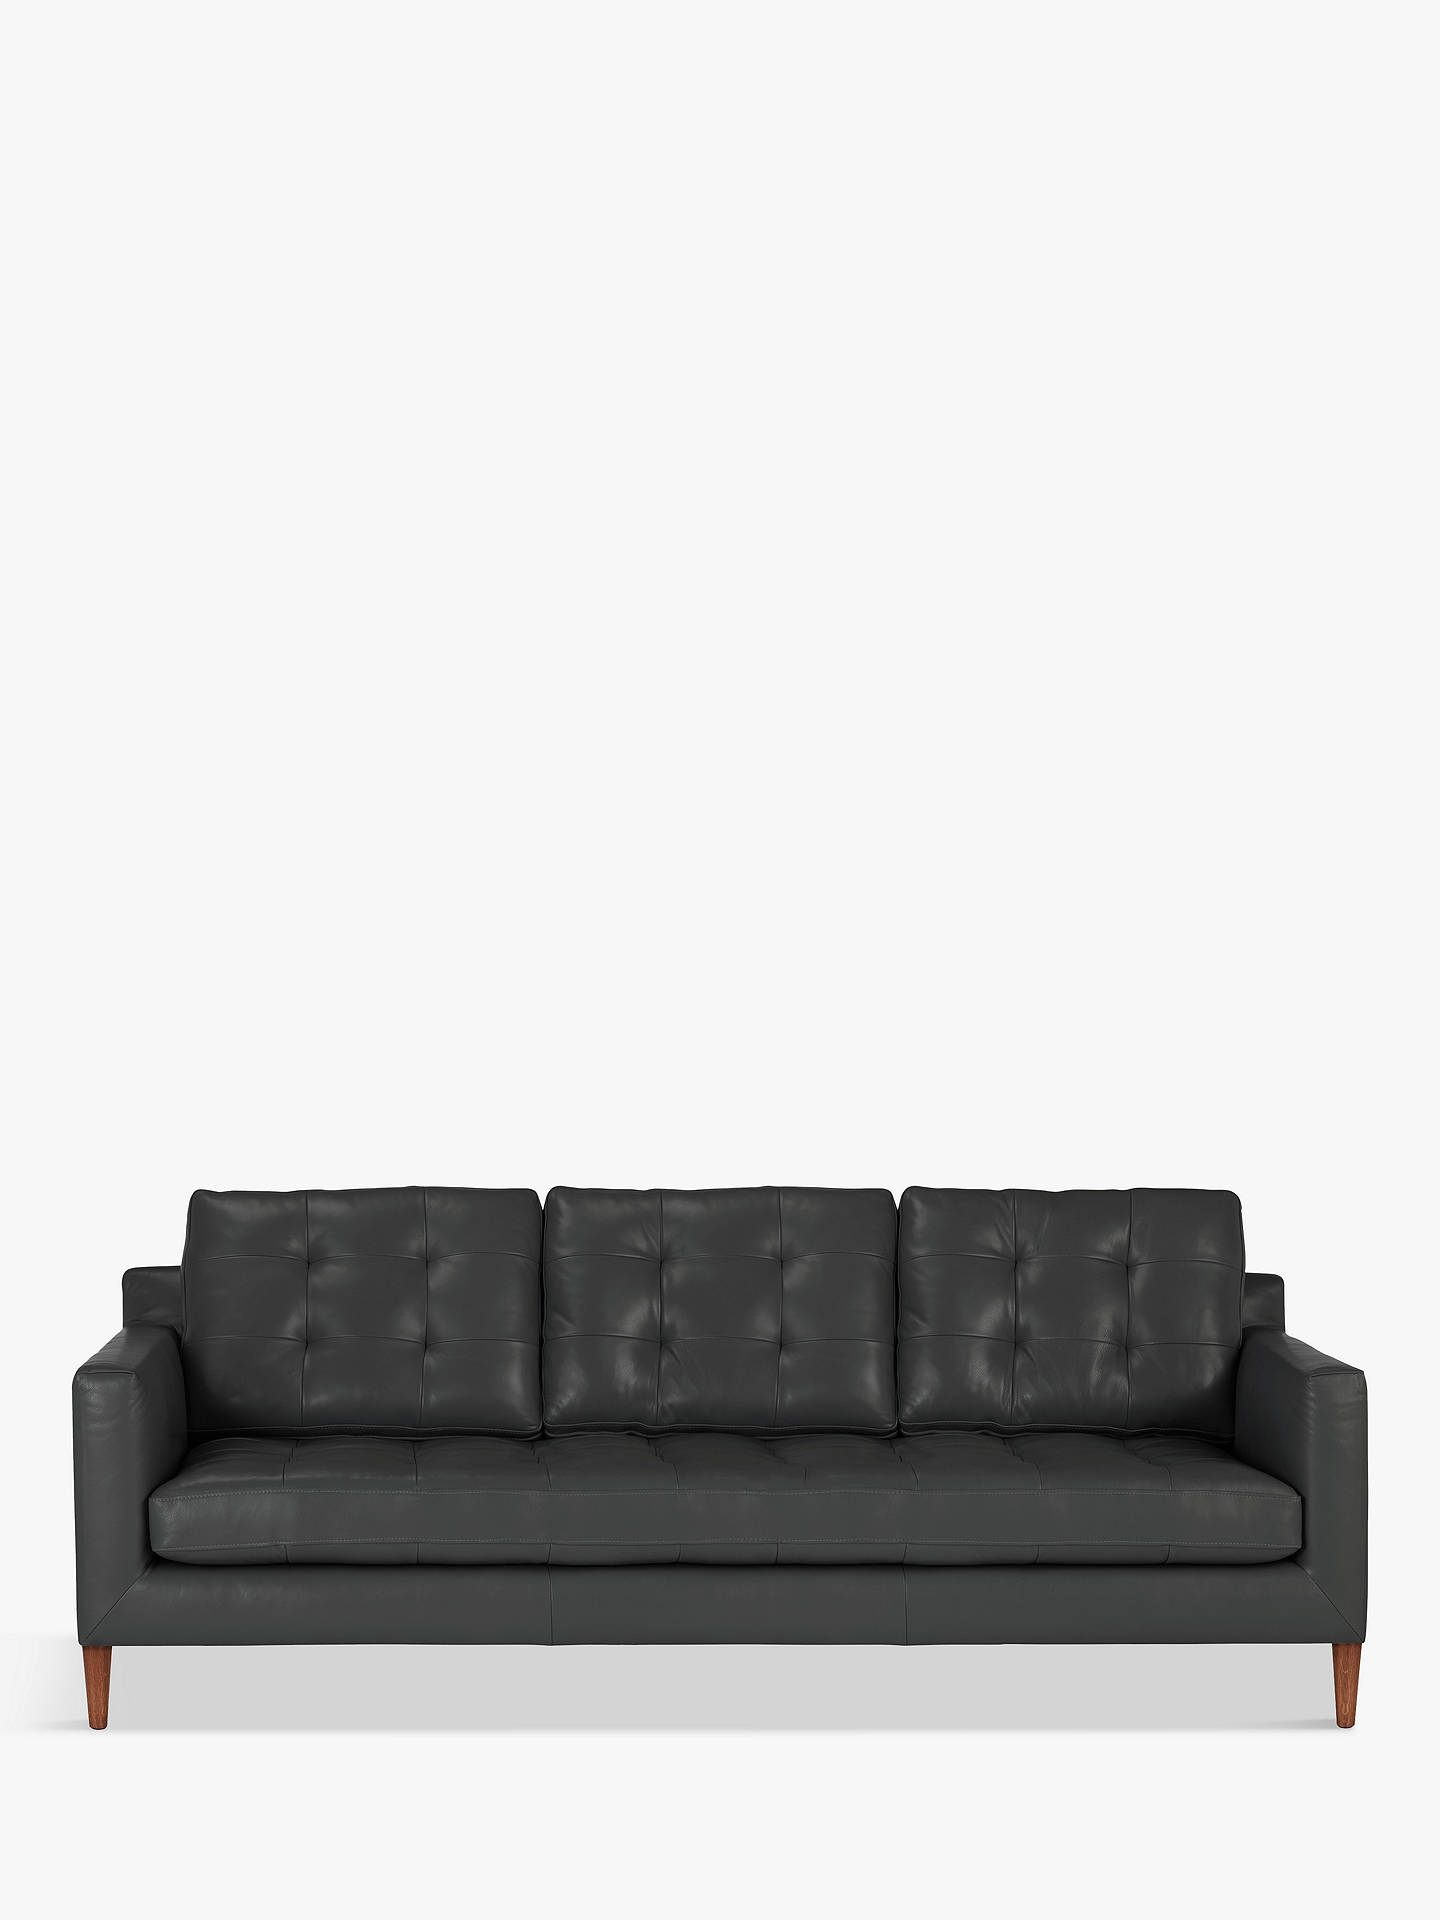 John Lewis Partners Dr Grand 4 Seater Leather Sofa Dark Leg Winchester Anthracite